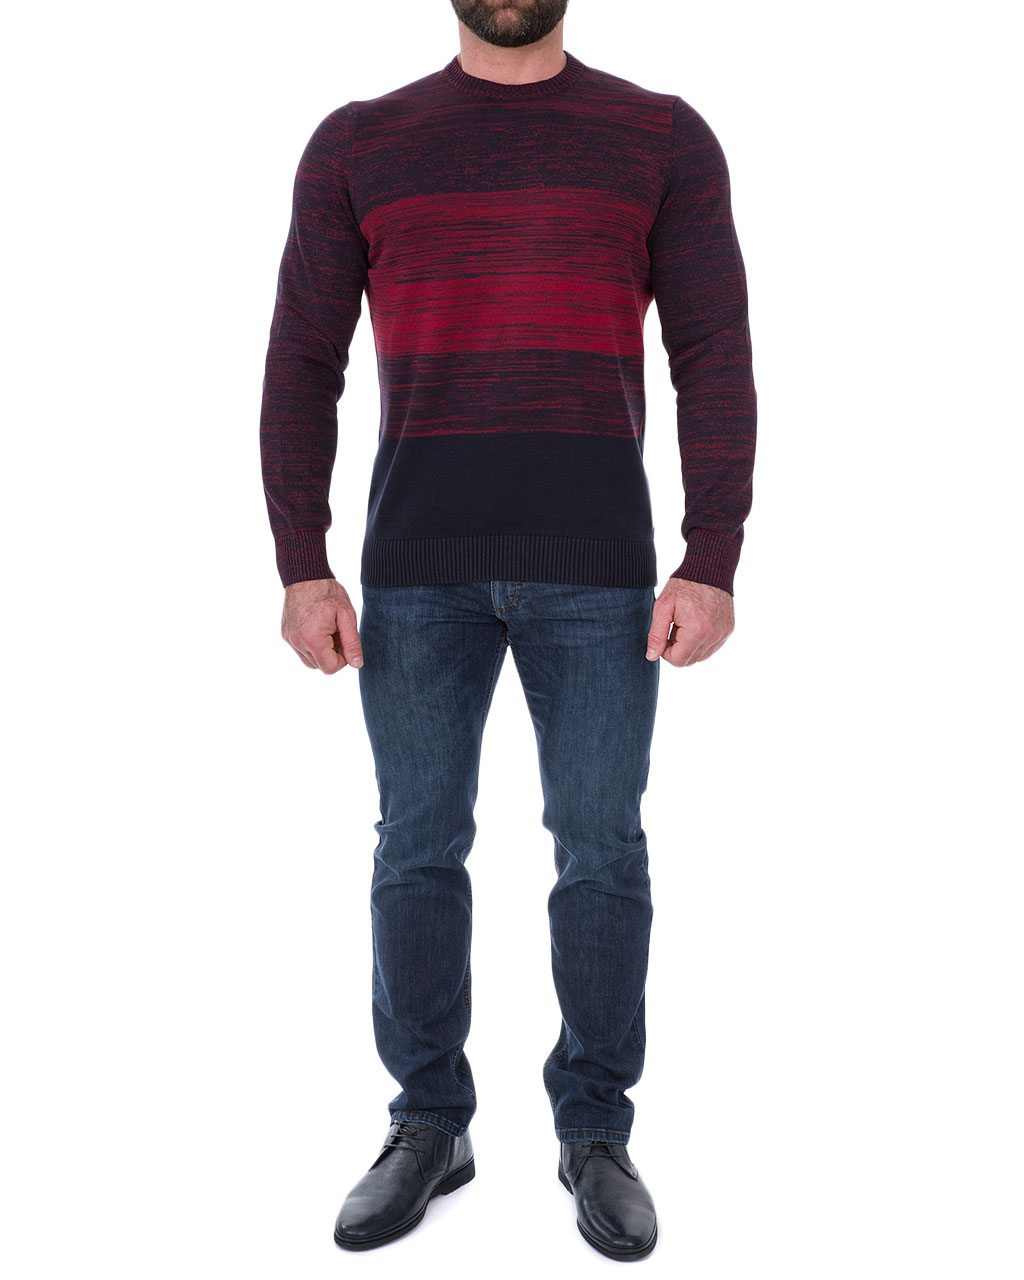 Men's jumper 7450-45522-960/19-20--2 (2)